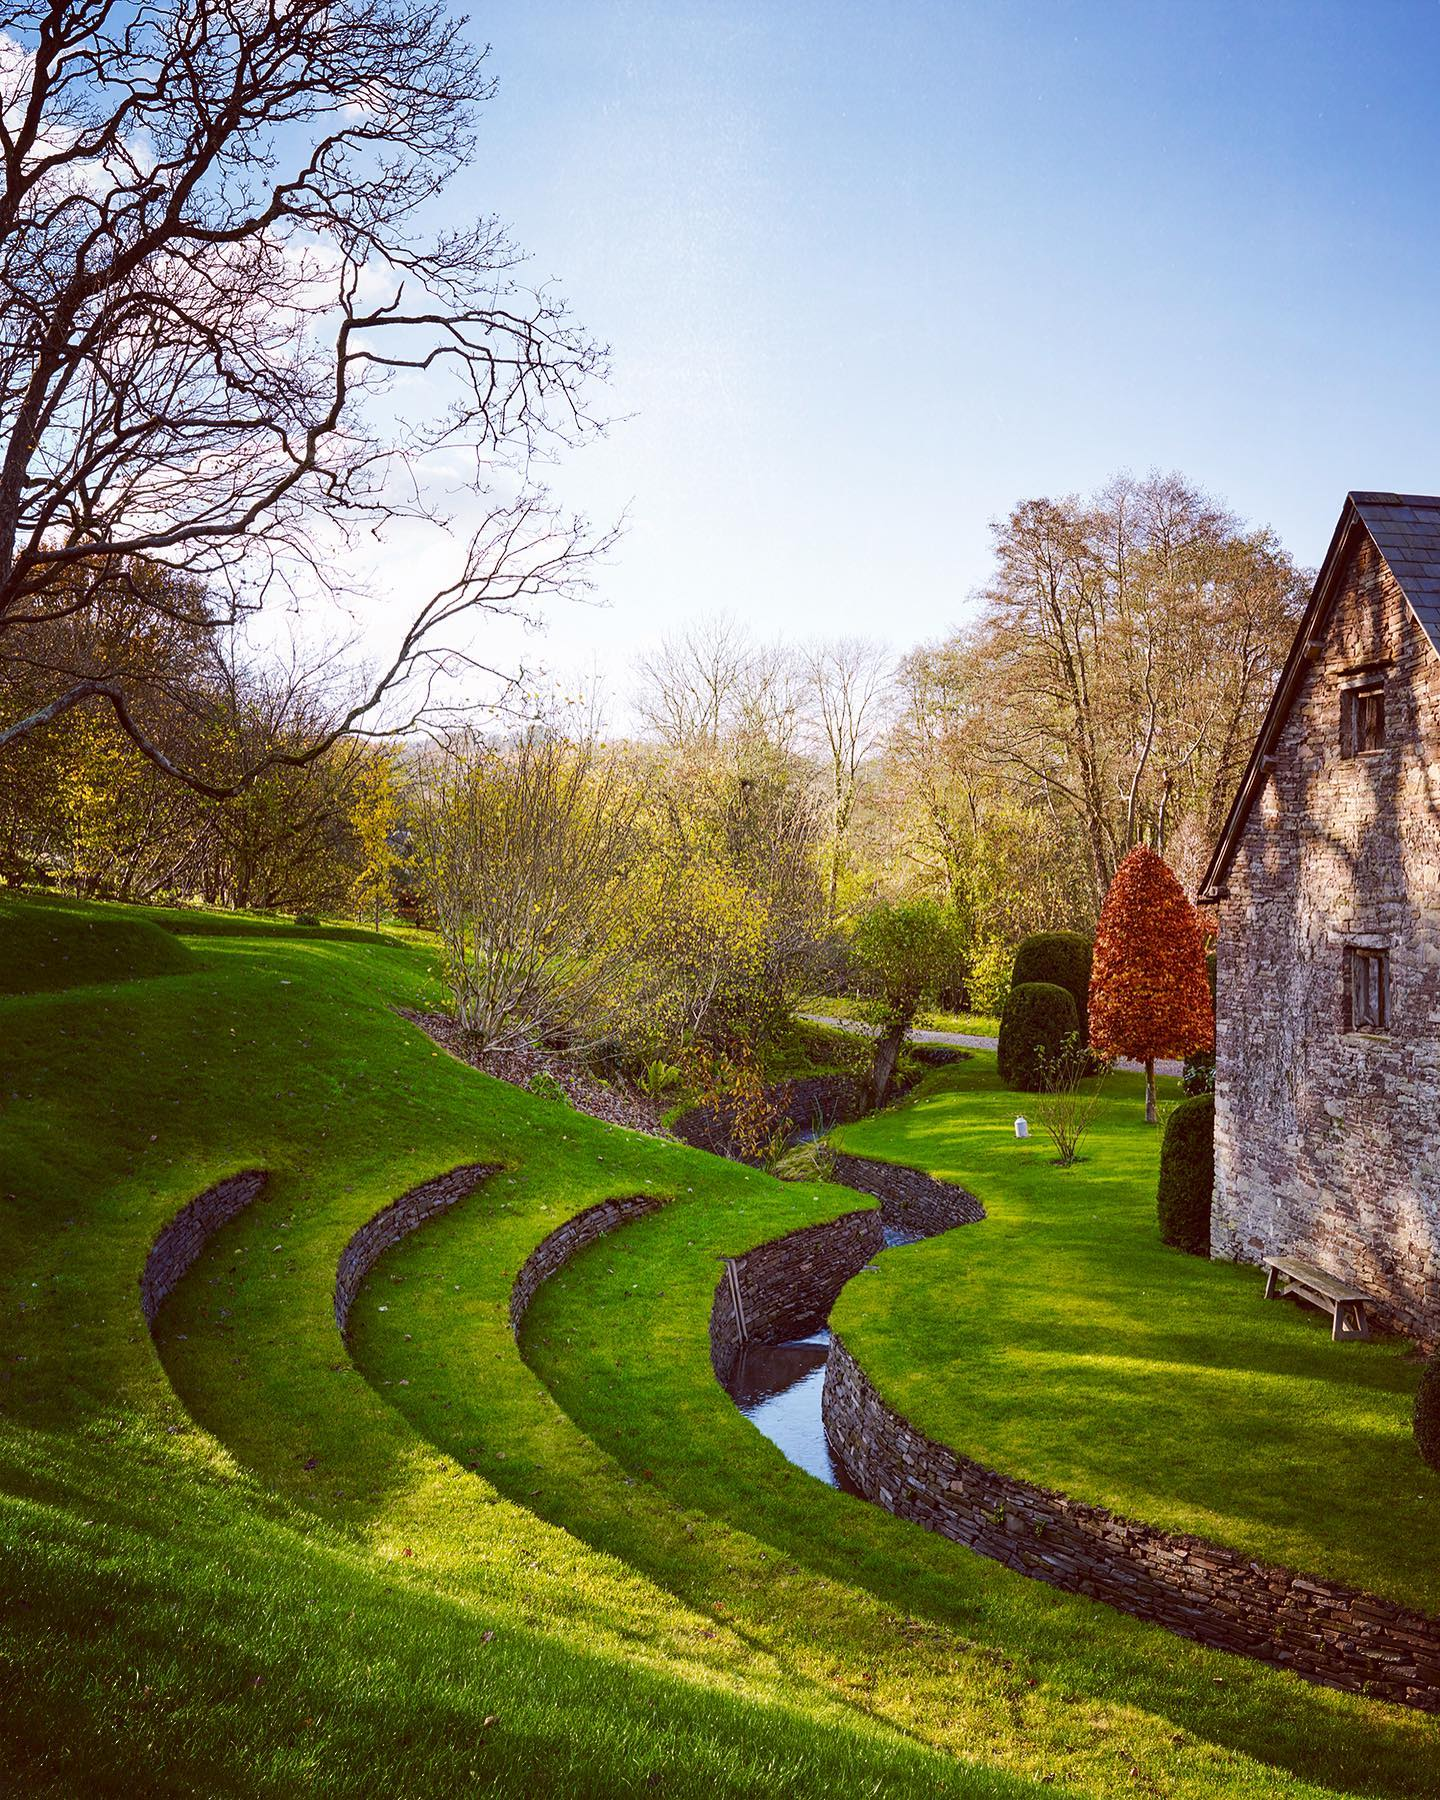 Delighted to be one of the many photographers contributing to @phaidonsnaps new book.THE GARDEN Elements and Styles by @toby_musgrave .This is the wonderful amphitheatre at Allt-y-Bela designed by the great @arnemaynardgardendesign ...#phaidonbooks #phaidonsnaps #arnemaynard #arnemaynardgardendesign #thegardenelementsandstyles #tobymusgrave #gardenphotography #gardenphotographer #bookphotography #bookphotographer